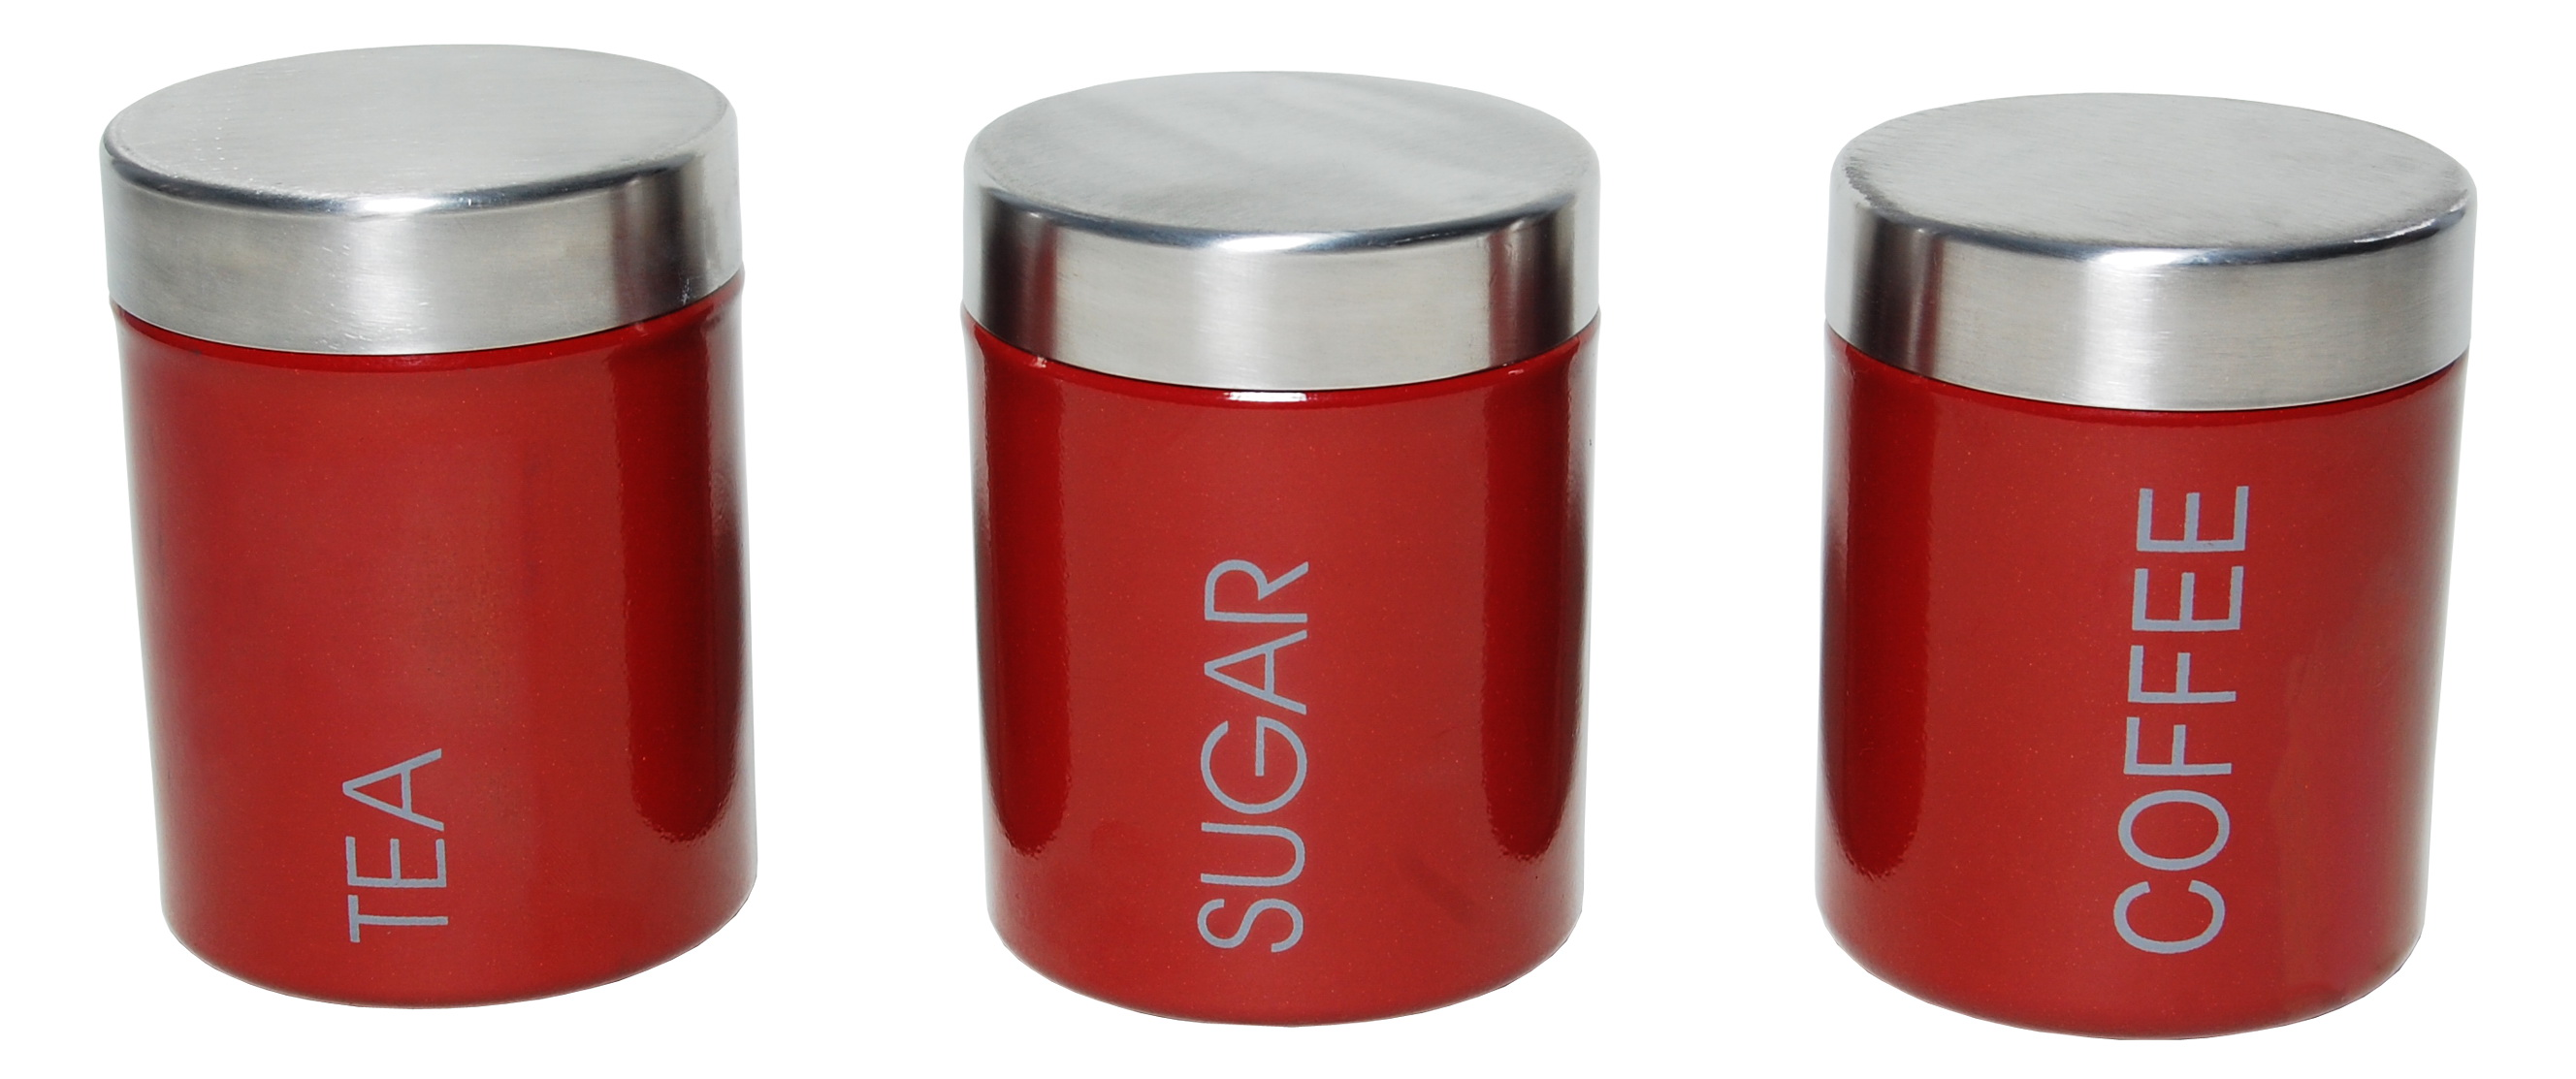 3 Pcs Tea Coffee Sugar Canister Set Red 4513